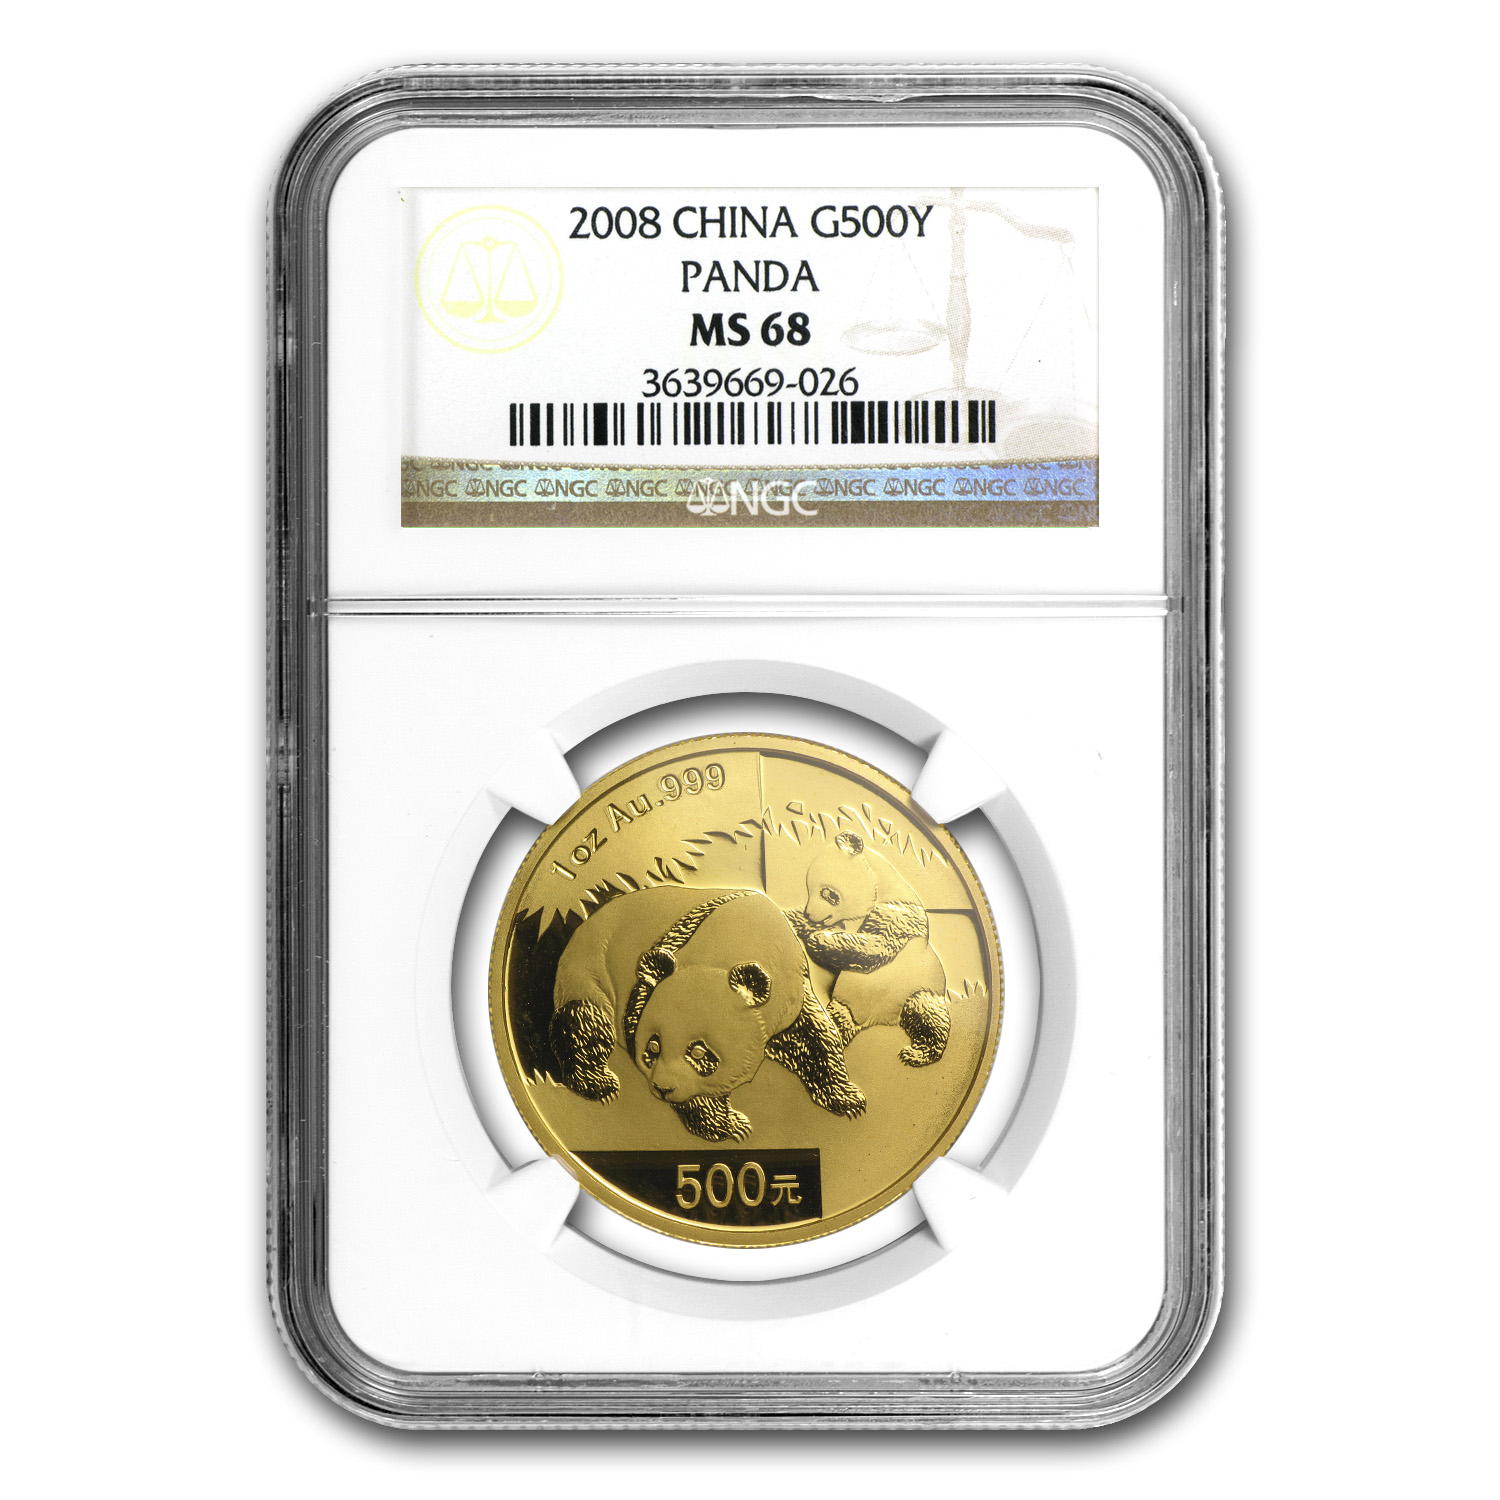 2008 1 oz Gold Chinese Panda MS-68 NGC